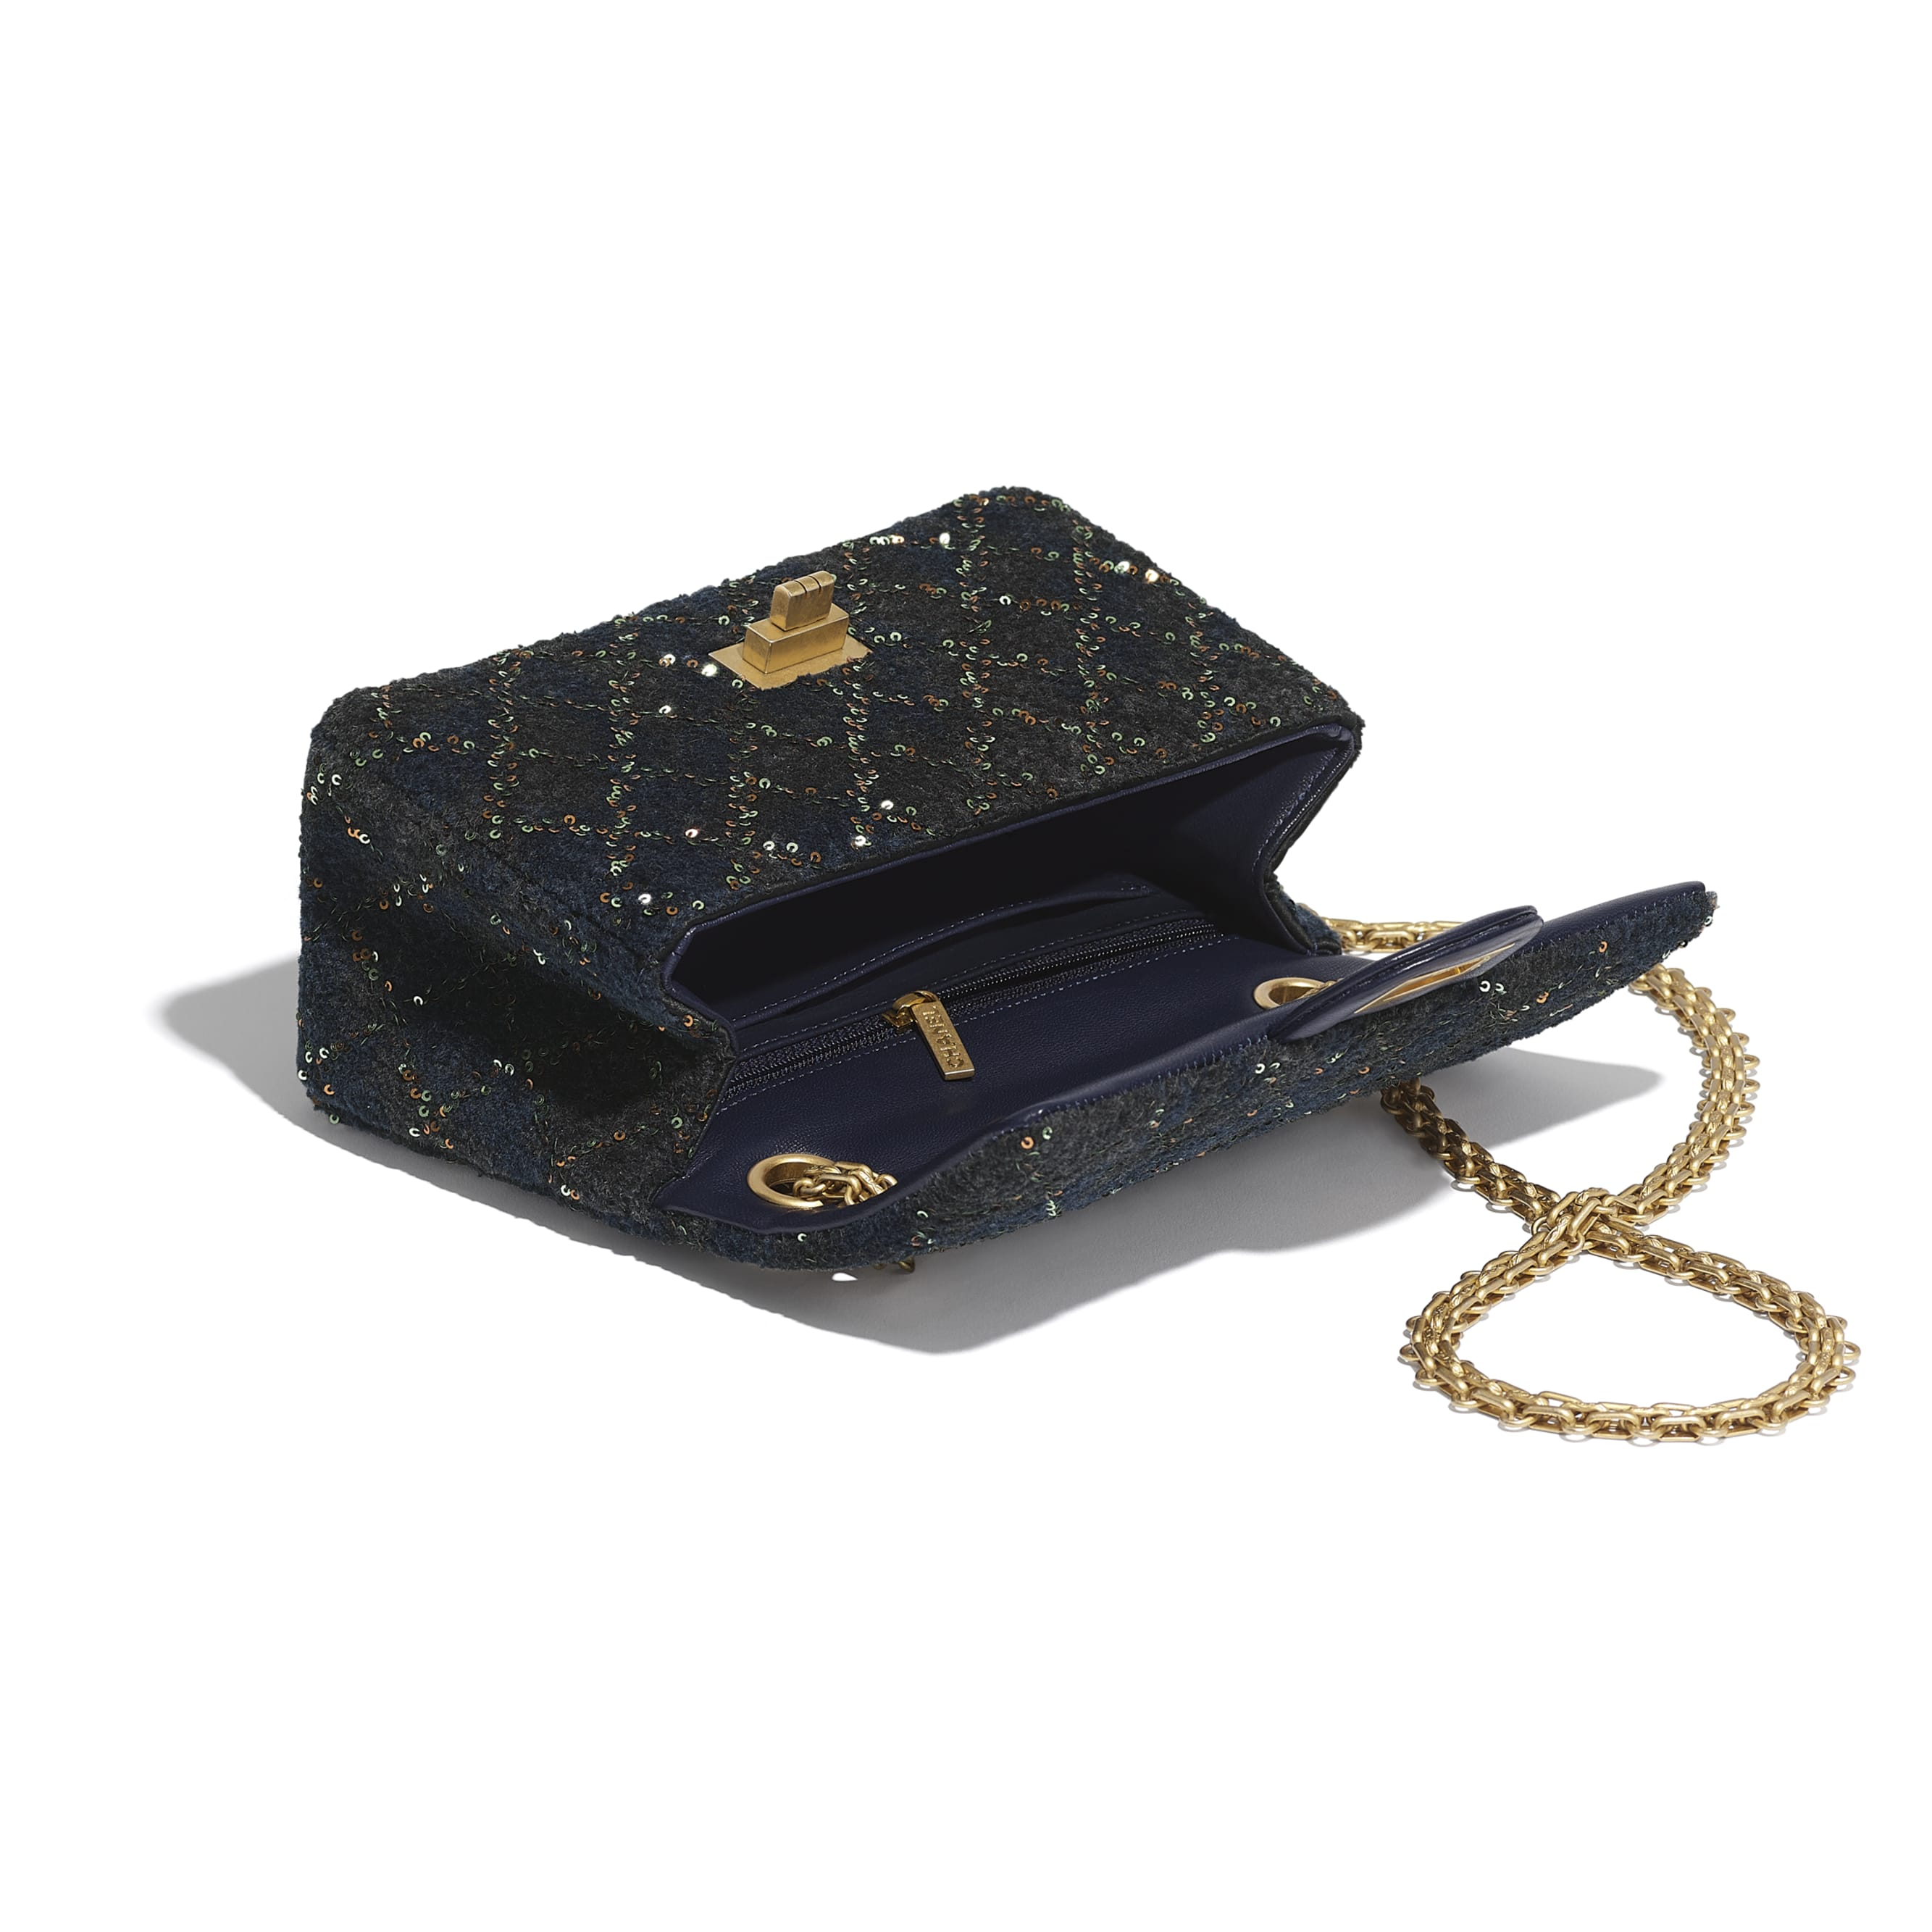 Small 2.55 Handbag - Navy Blue - Wool, Mixed Fibers, Sequins & Gold-Tone Metal - CHANEL - Other view - see standard sized version